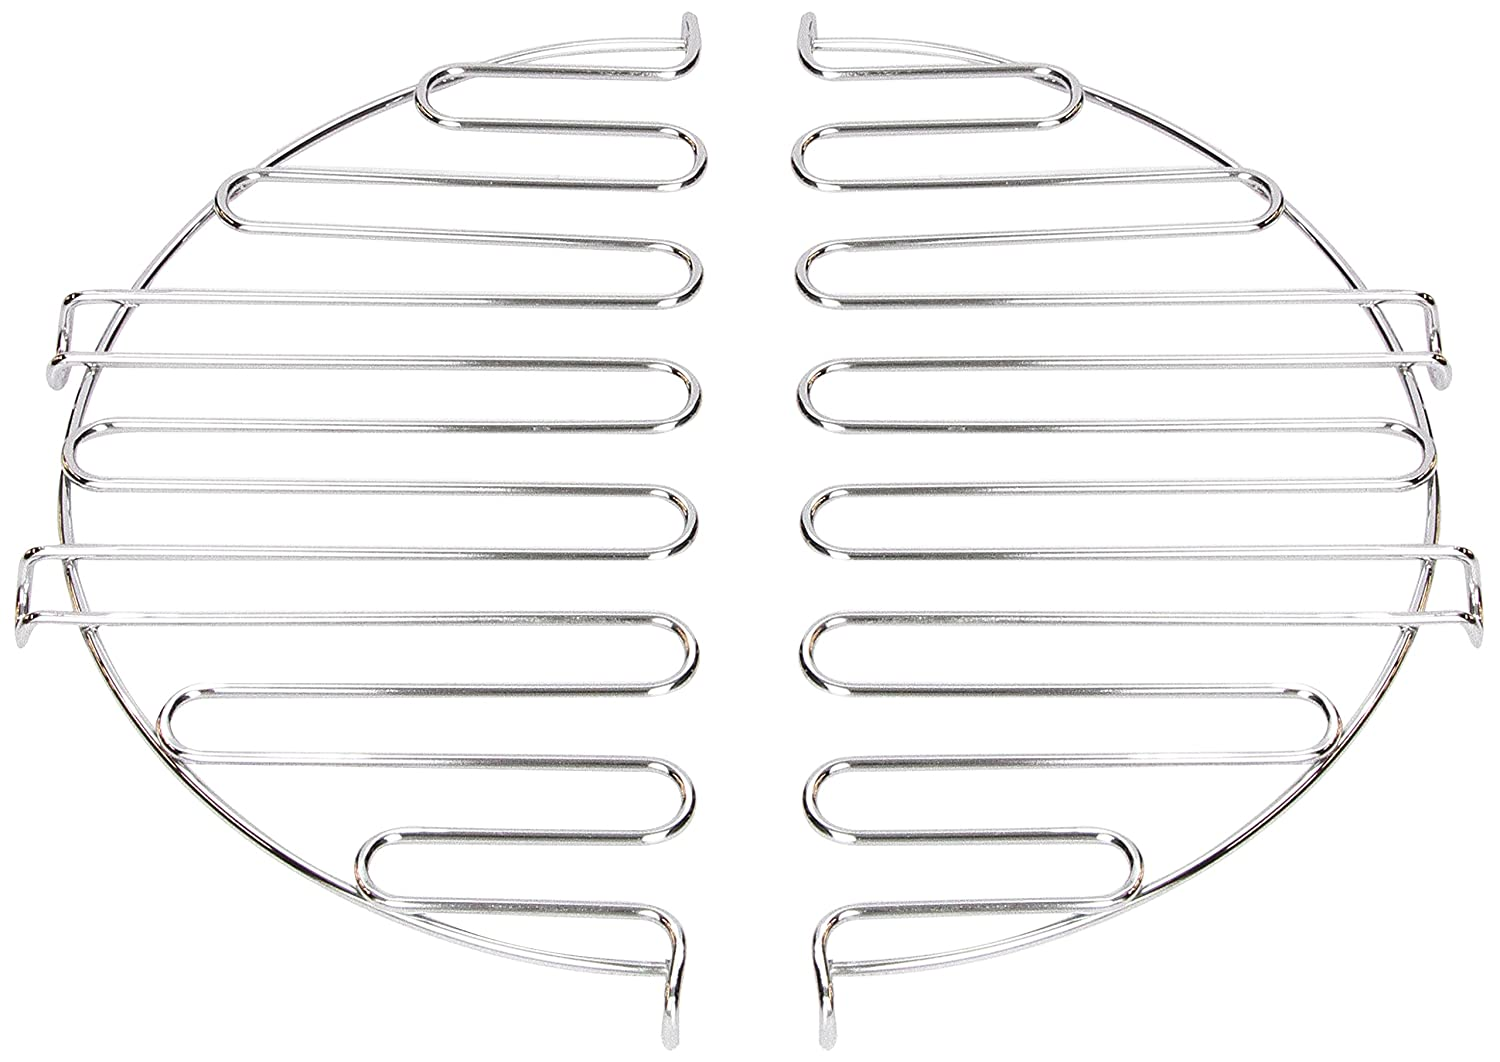 Char-Broil Big Easy Leg Rack